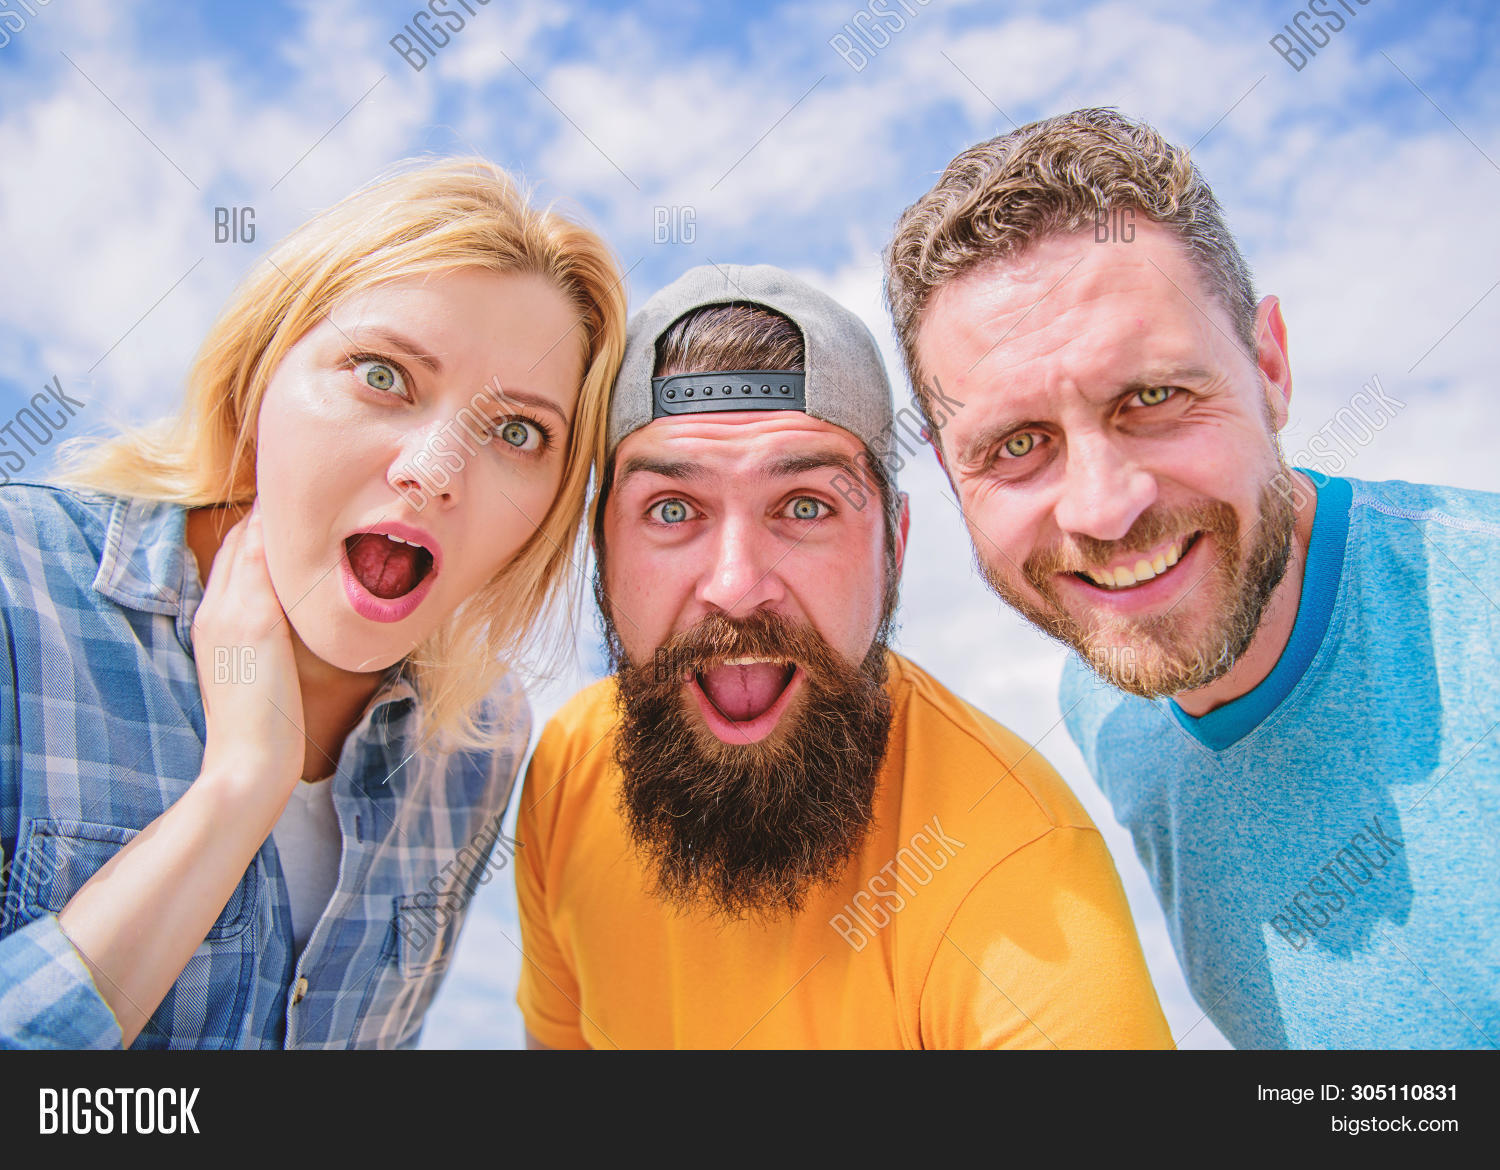 adult,amazed,background,beard,bearded,belief,close,collective,company,confident,emotional,expression,faces,friends,girl,group,hipster,how,impossible,impress,impression,is,look,looking,man,men,mind,news,no,opinion,outdoors,people,shocked,shocking,sky,stand,surprised,team,that,threesome,way,woman,wonder,you